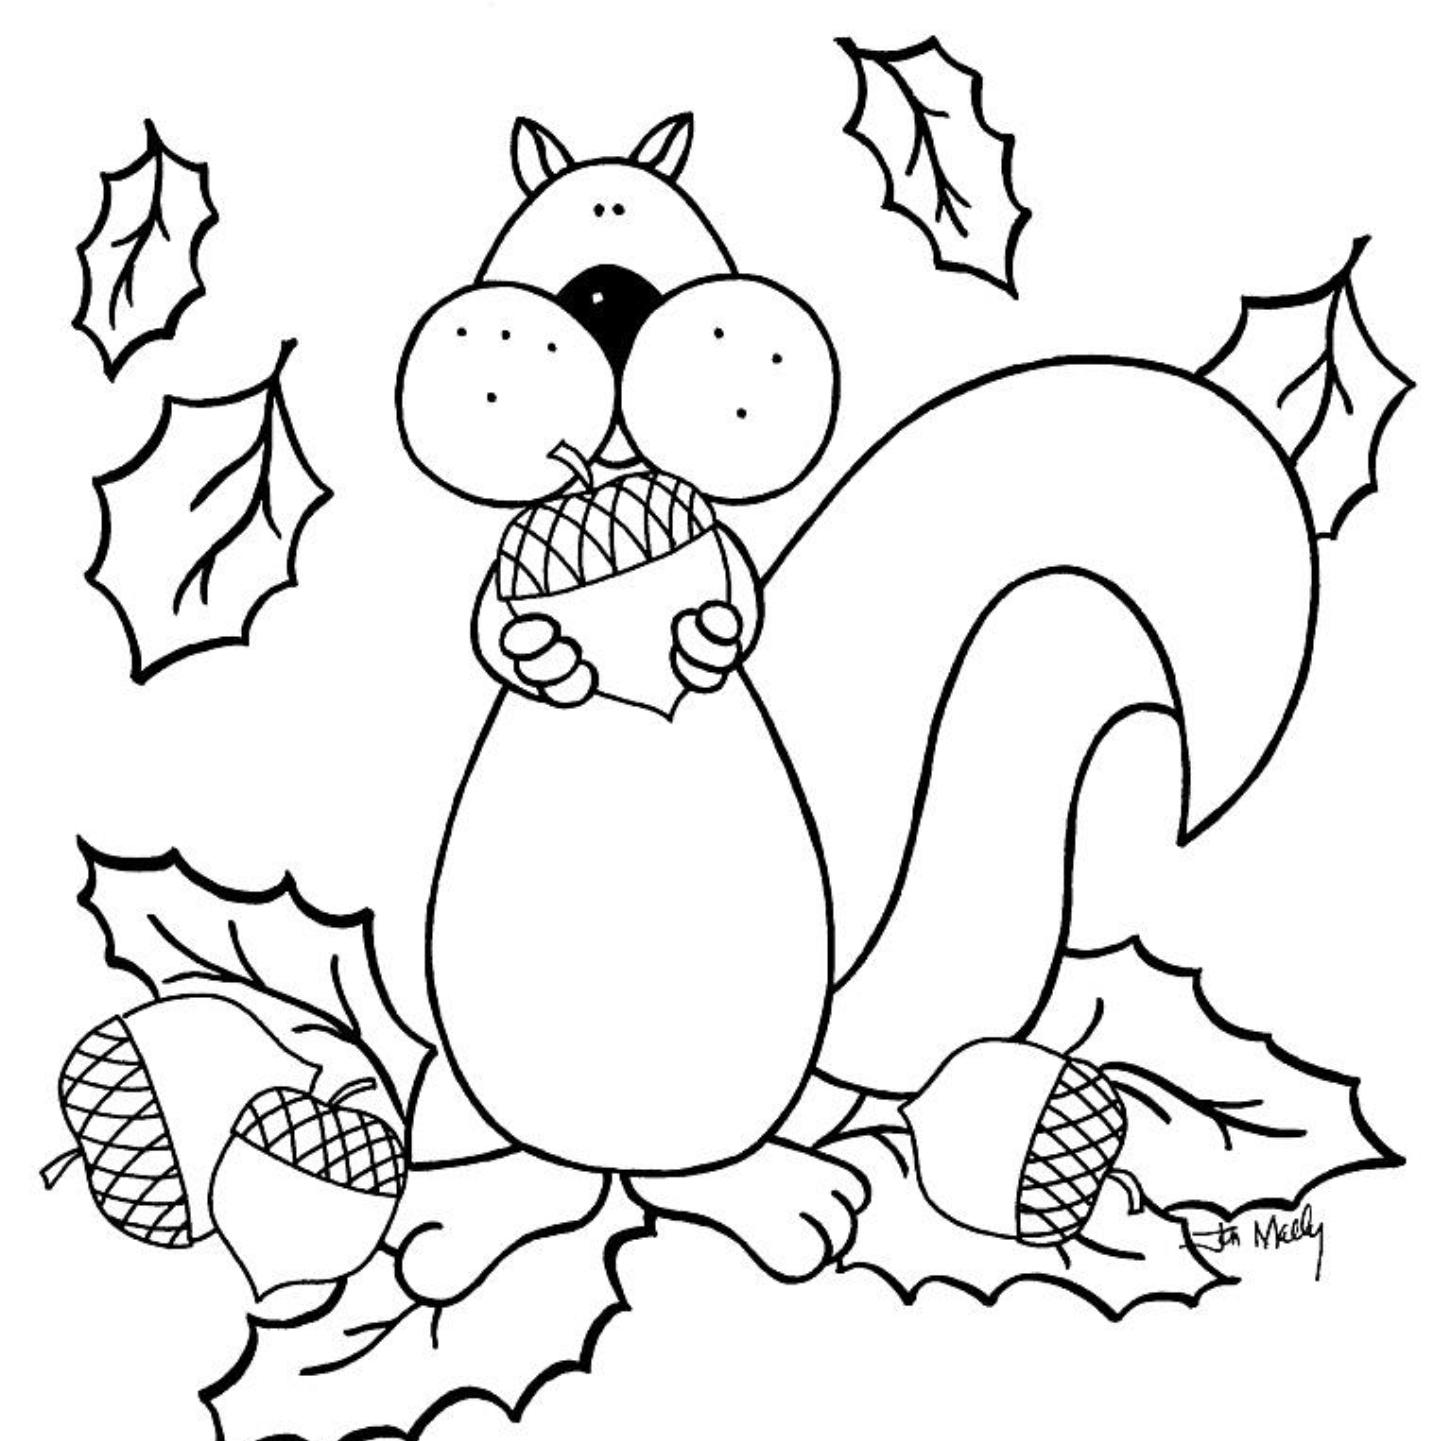 1450x1441 Quickly Fall Coloring Pages For Preschoolers L